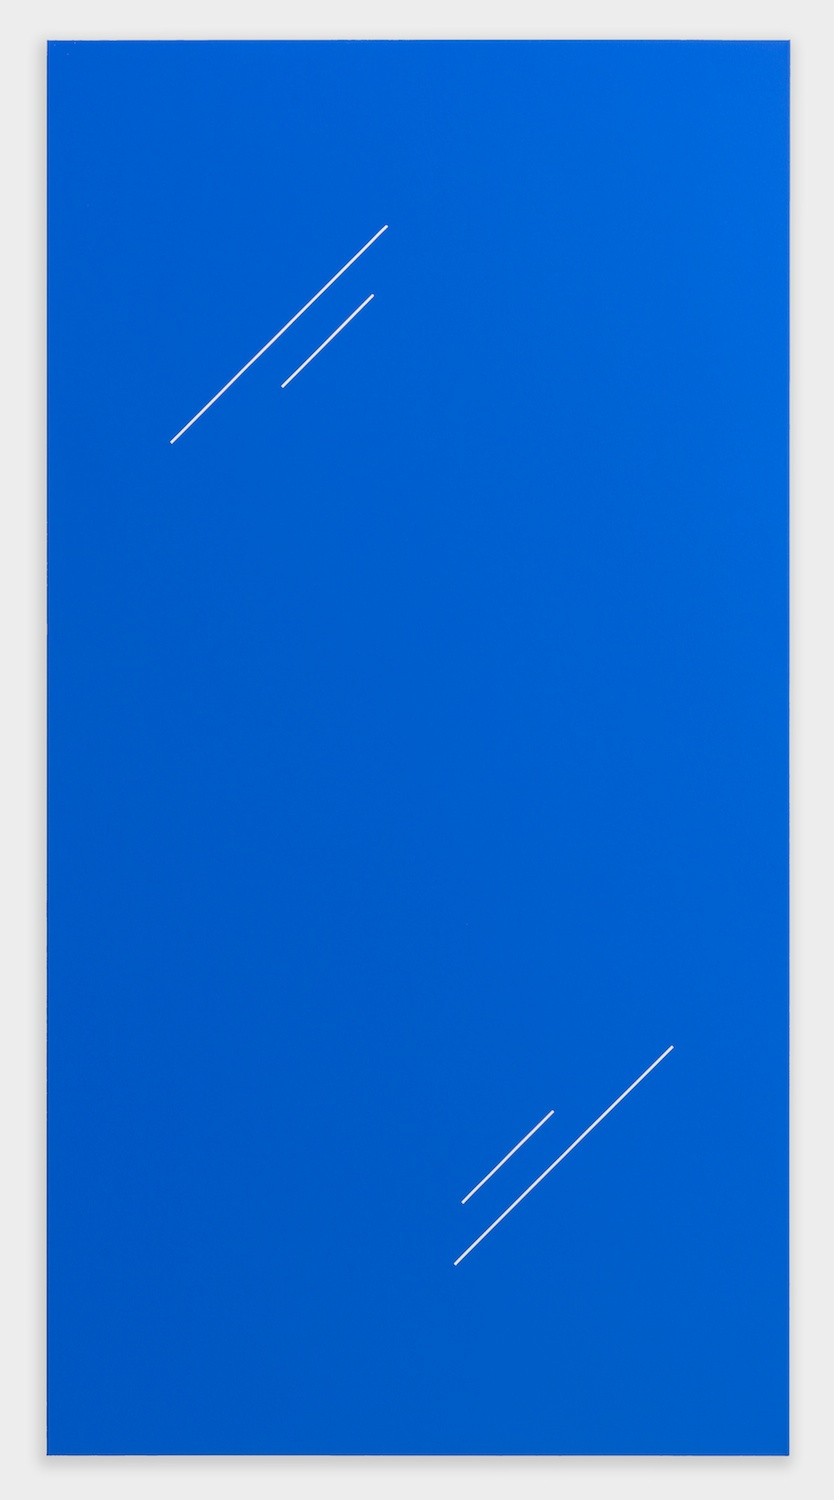 "Paul Cowan BCEAUSE THE SKY IS BULE 2013 Chroma-key blue paint on canvas 78"" x 41"" PC080"